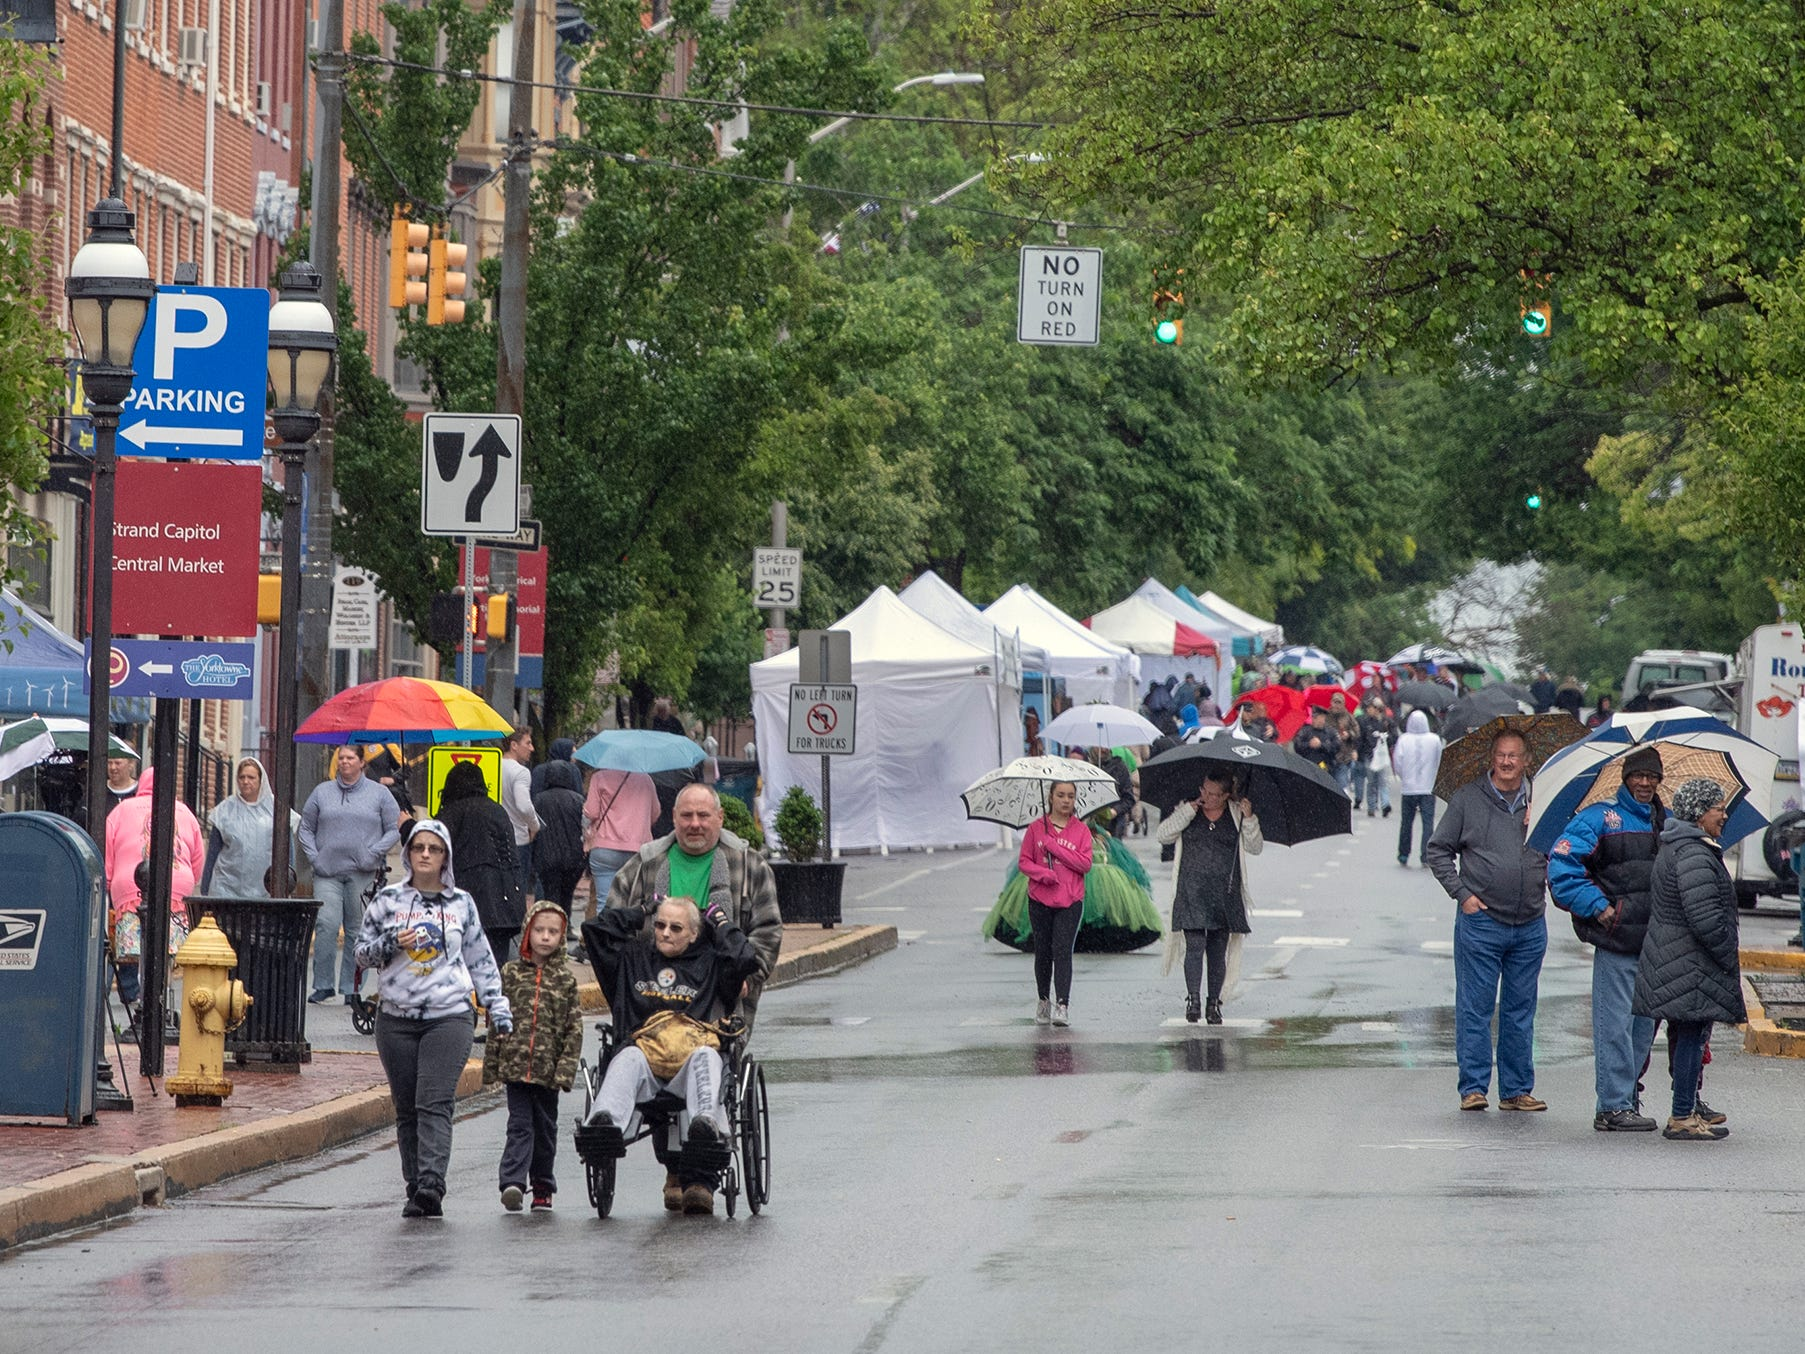 People armed with umbrellas walk in the first block of East Market Street during the 44th Annual Olde York Street Fair.